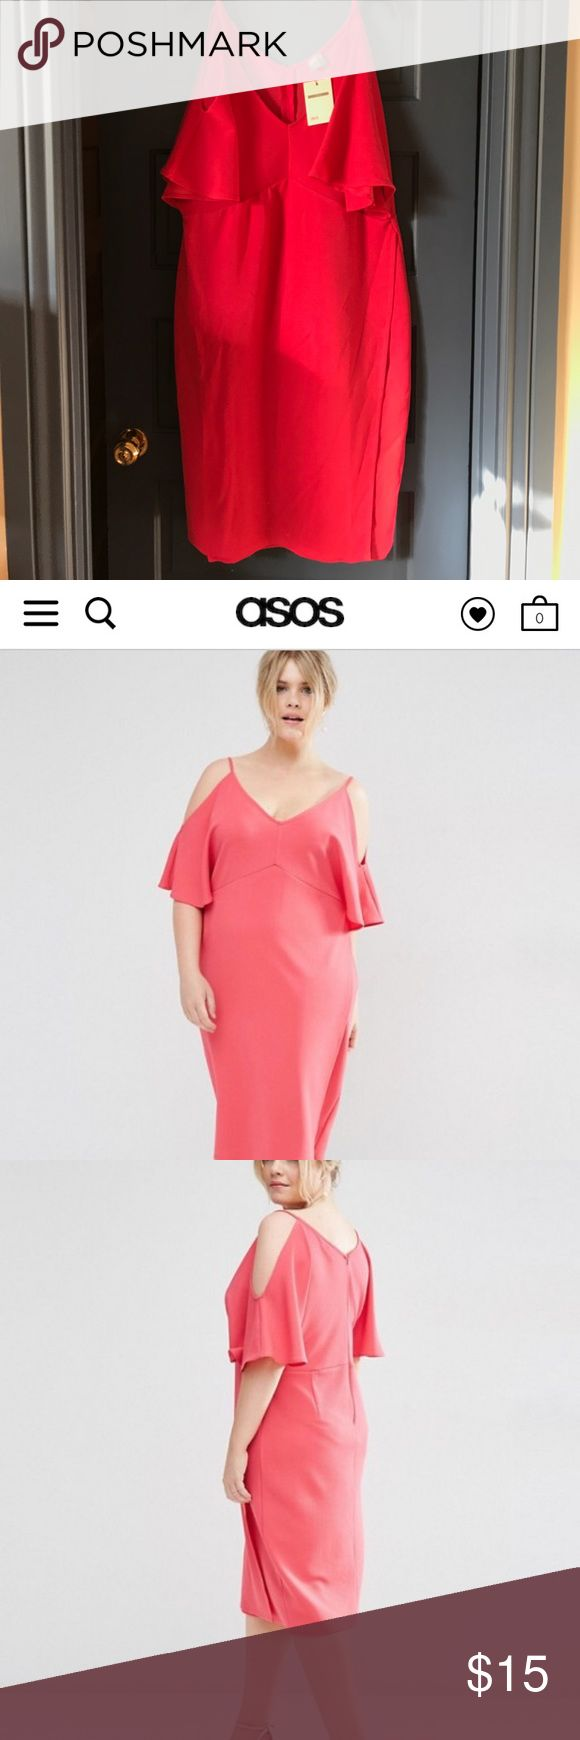 Pink plus size dress This is a super cute dress from ASOS. It has cut out sleeves and is mid length. It's never been worn. ASOS Curve Dresses Midi